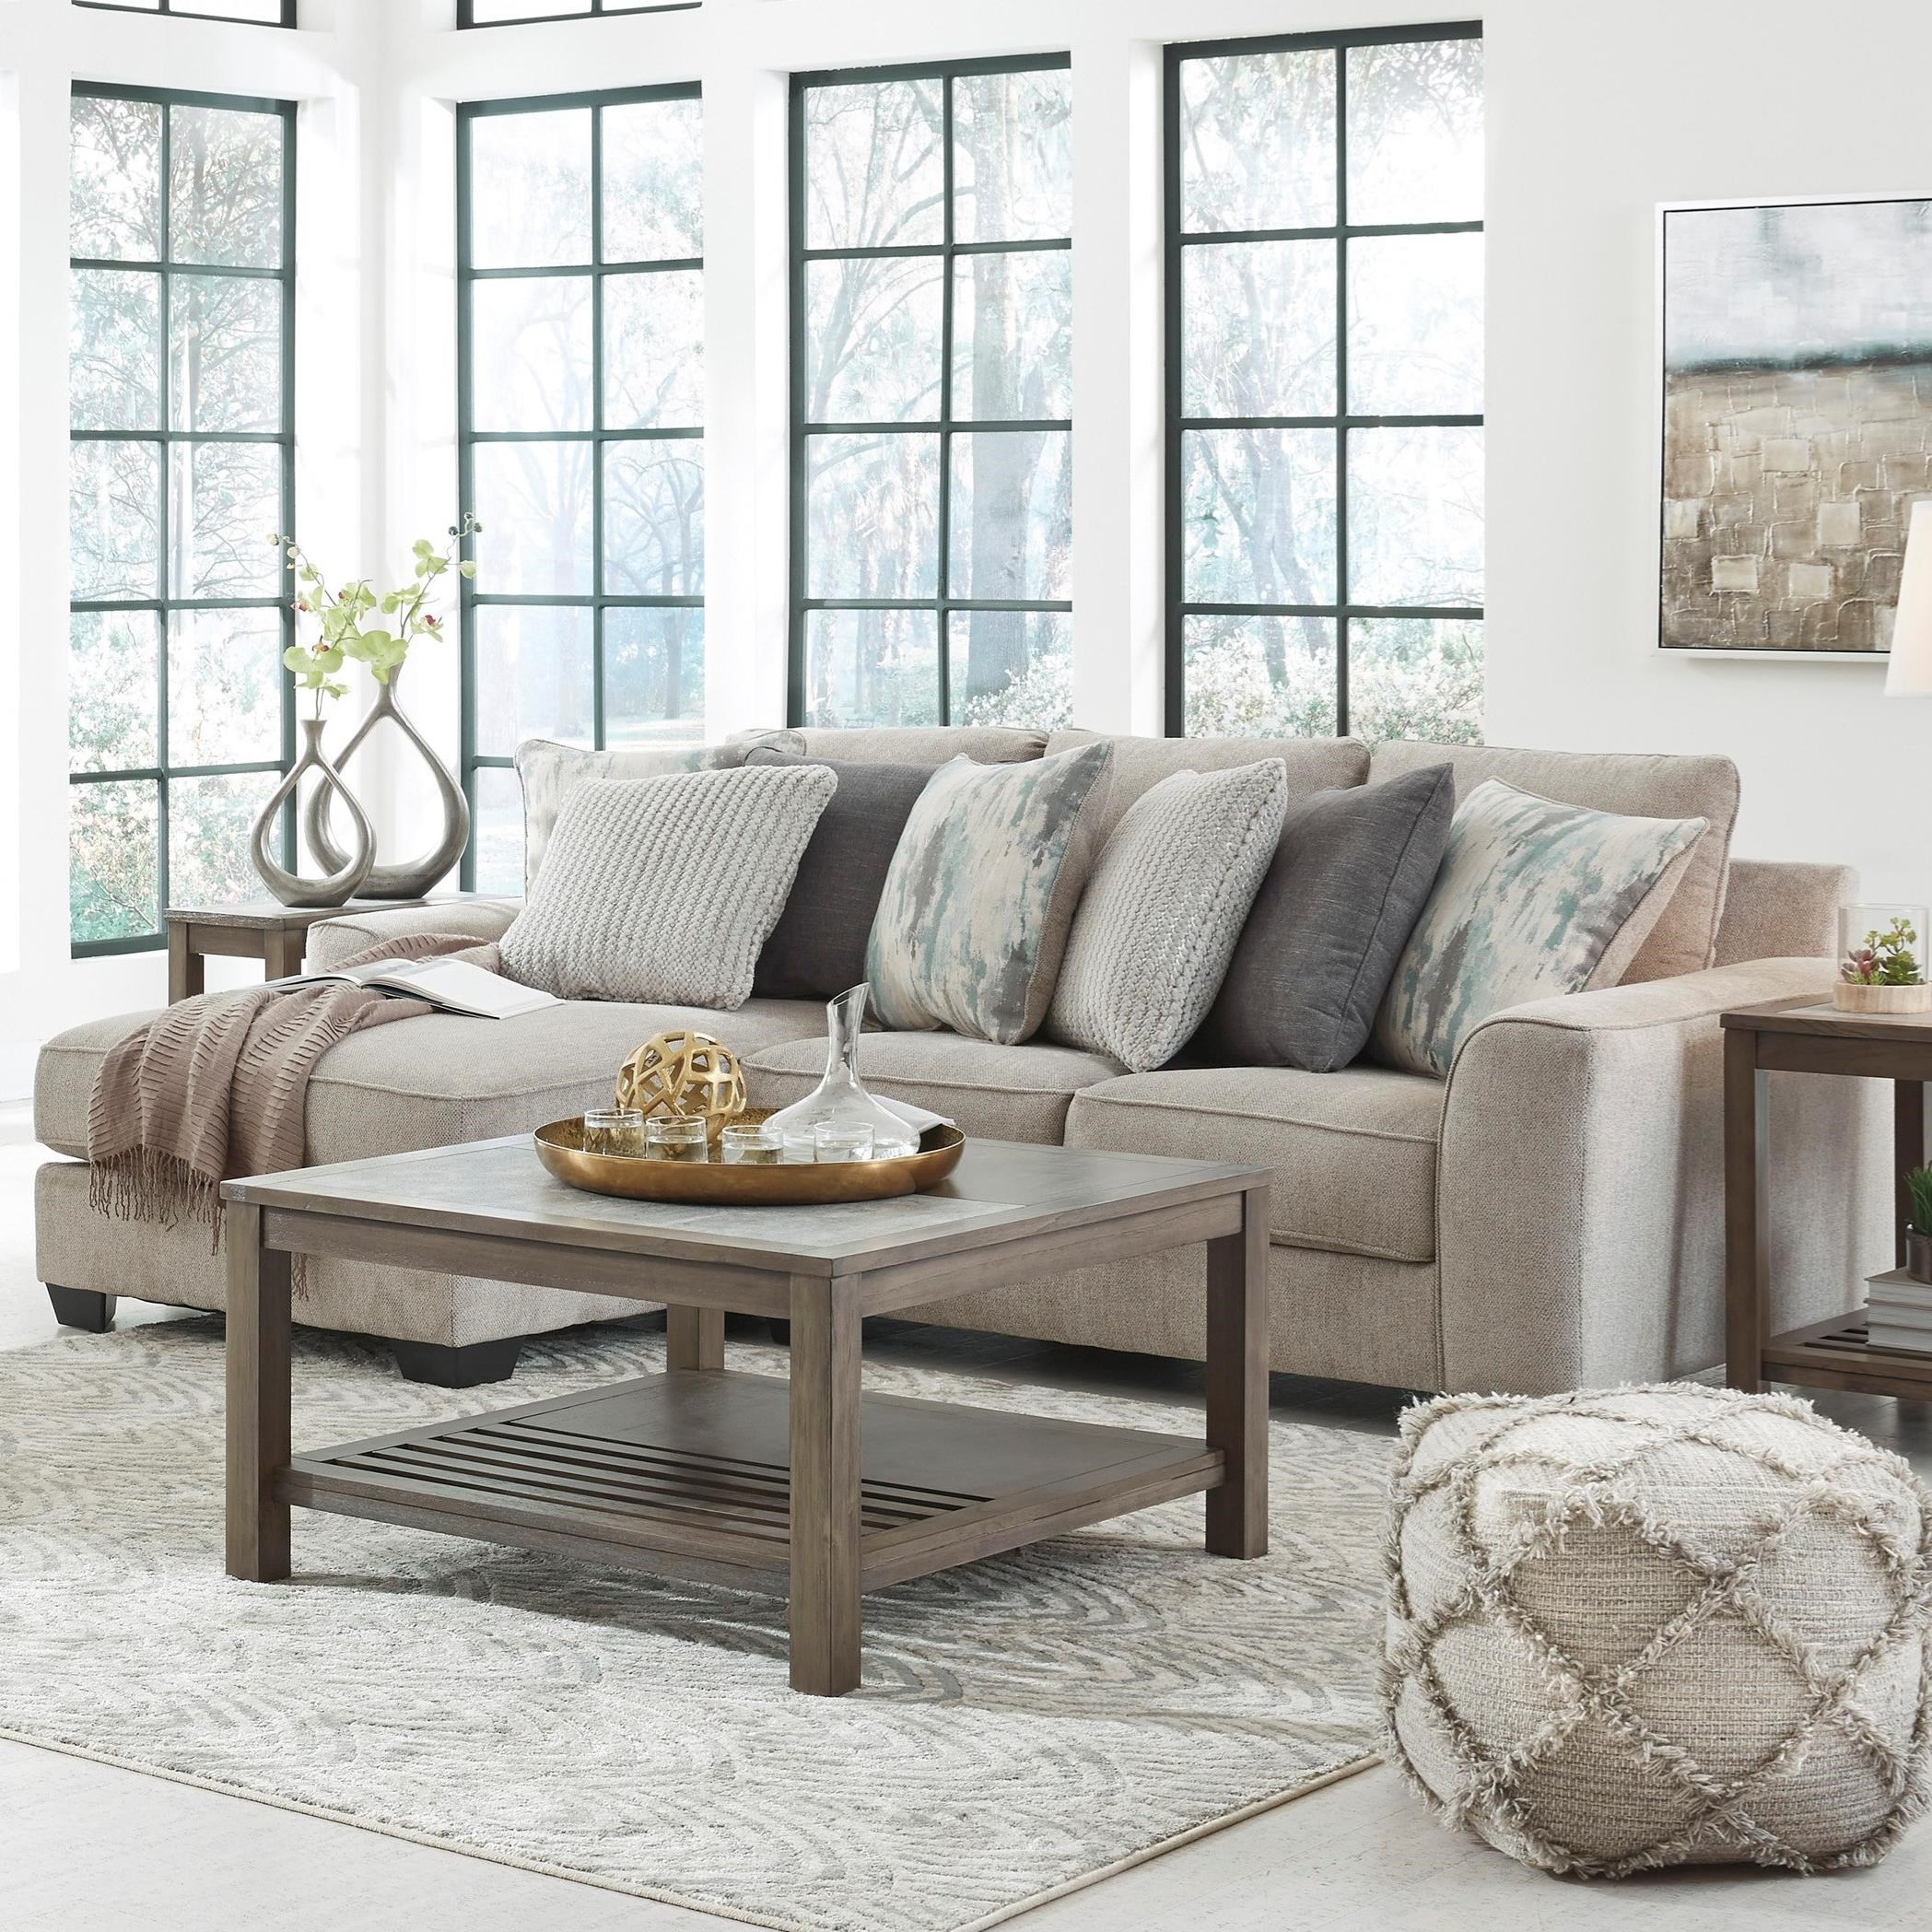 Ardsley 2-Piece Sectional with Left Chaise by Benchcraft at Fisher Home Furnishings